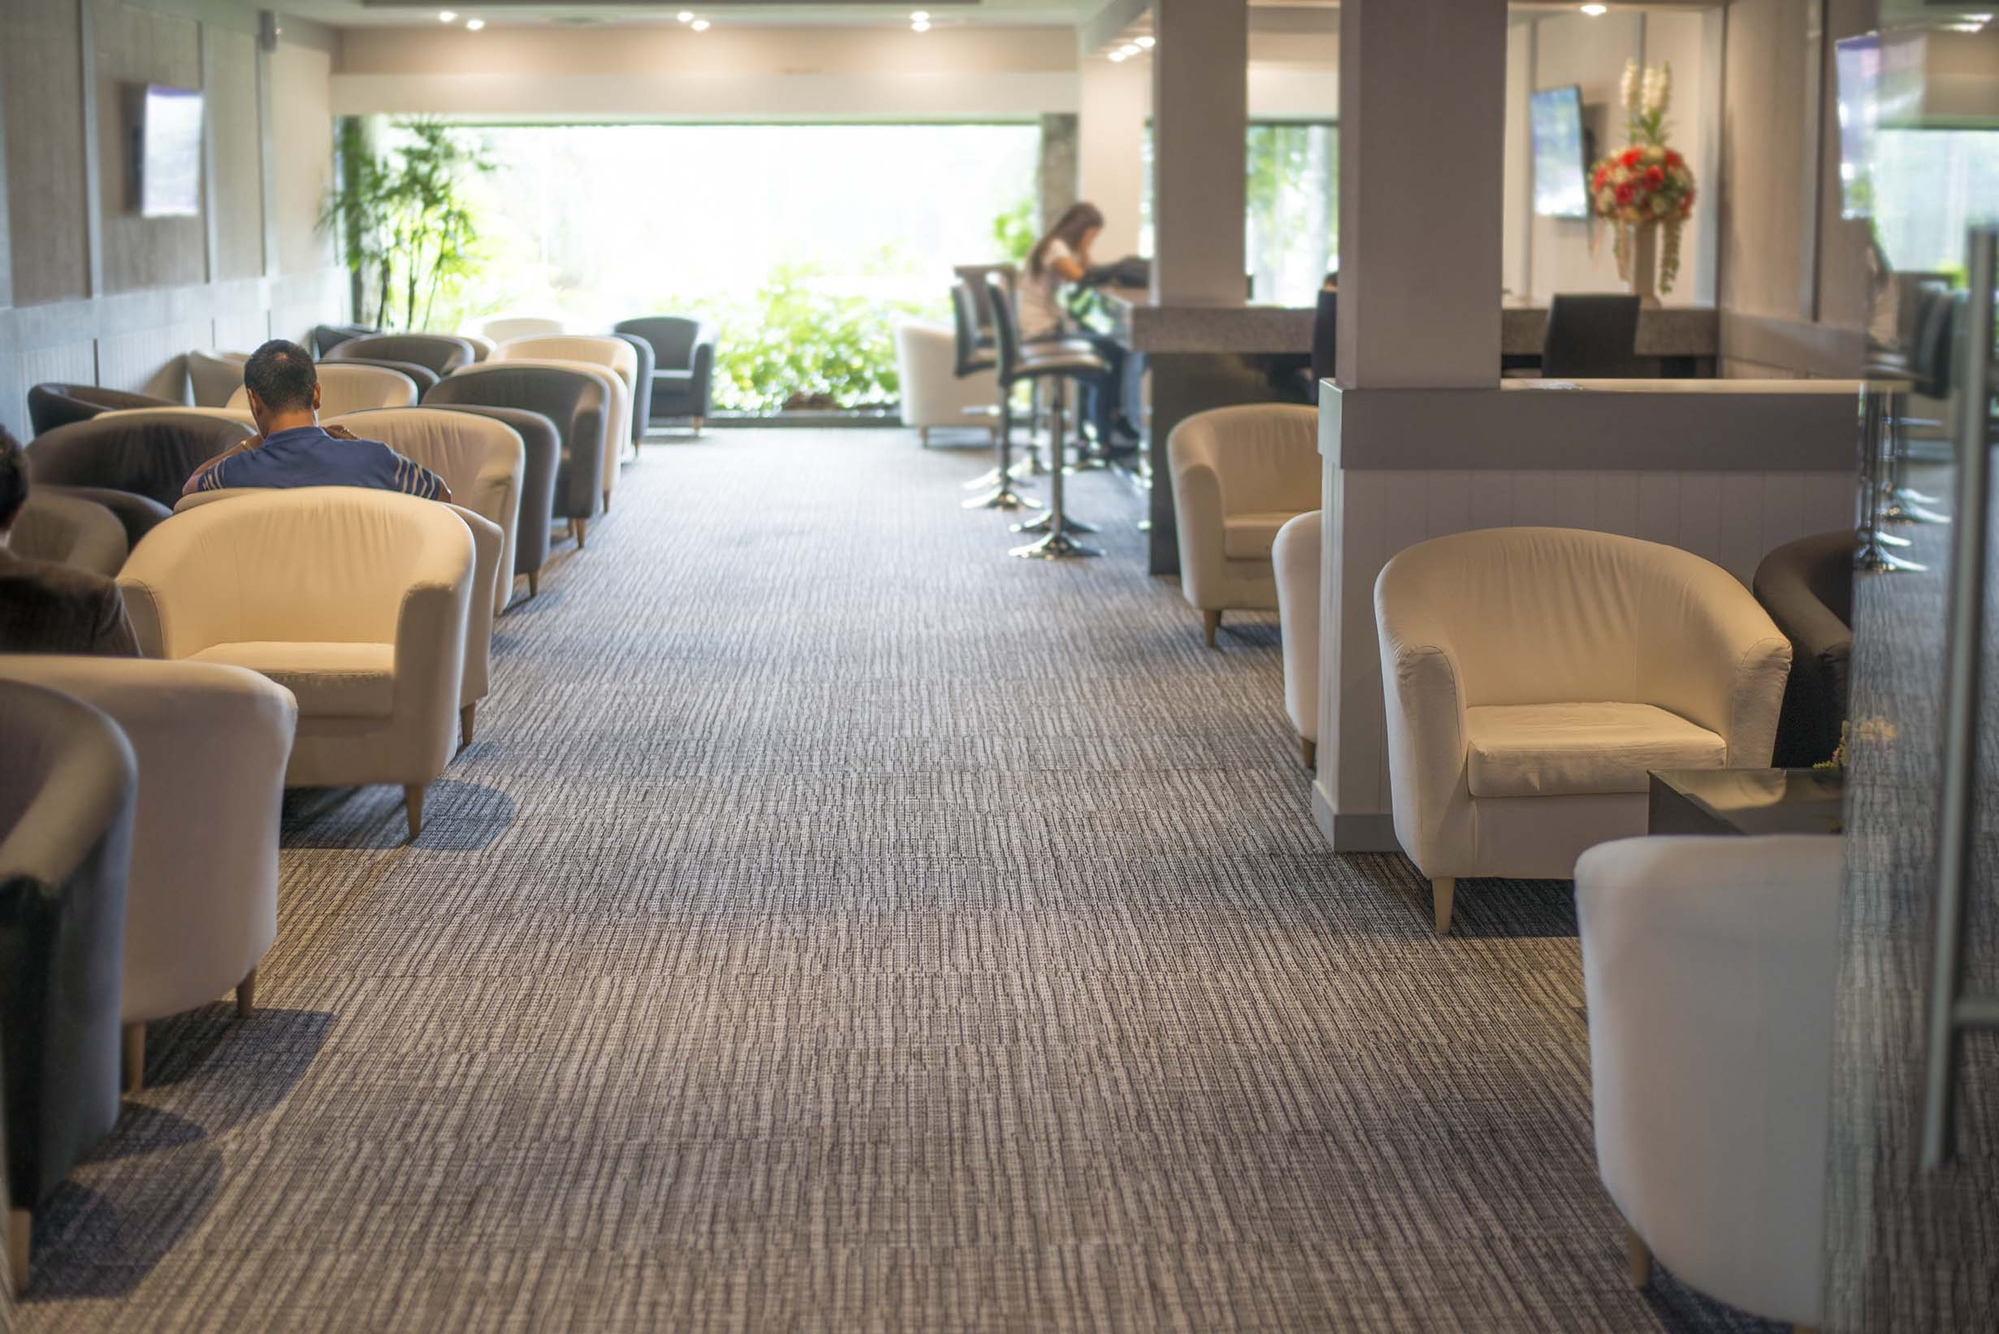 Commercial Carpet Cleaning Millstone Township